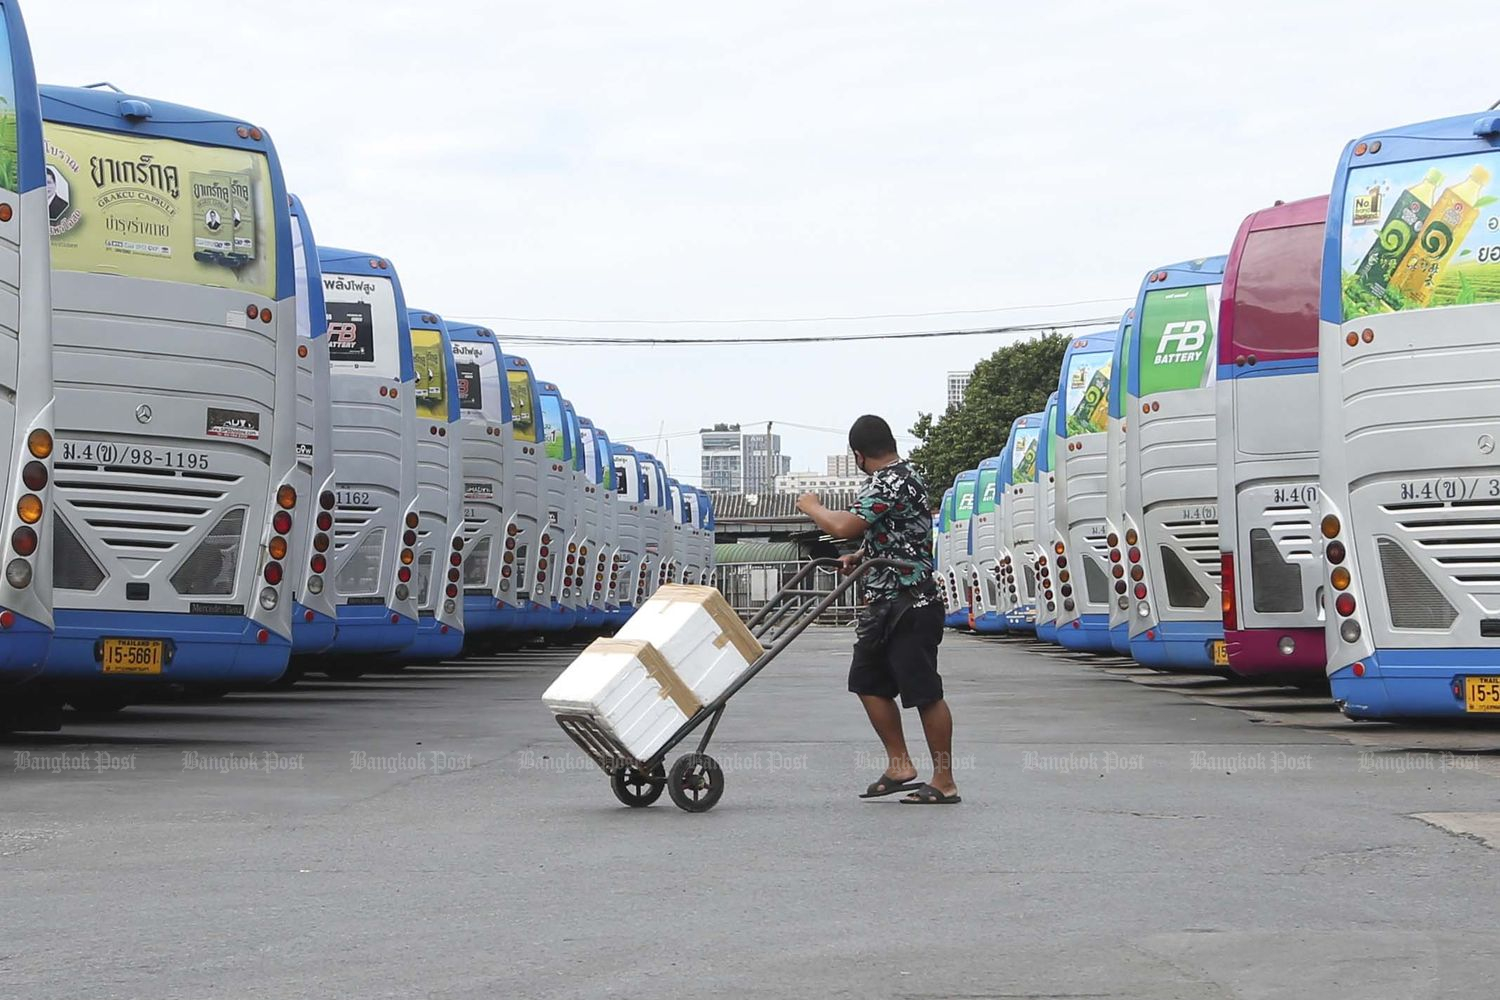 A man moves boxes at the Mor Chit bus terminal in Bangkok on Wednesday, the first day interprovincial bus services were suspended to contain the Covid-19 outbreak. The temporary suspension ends on Aug 2. (Photo by Pattarapong Chatpattarasill)